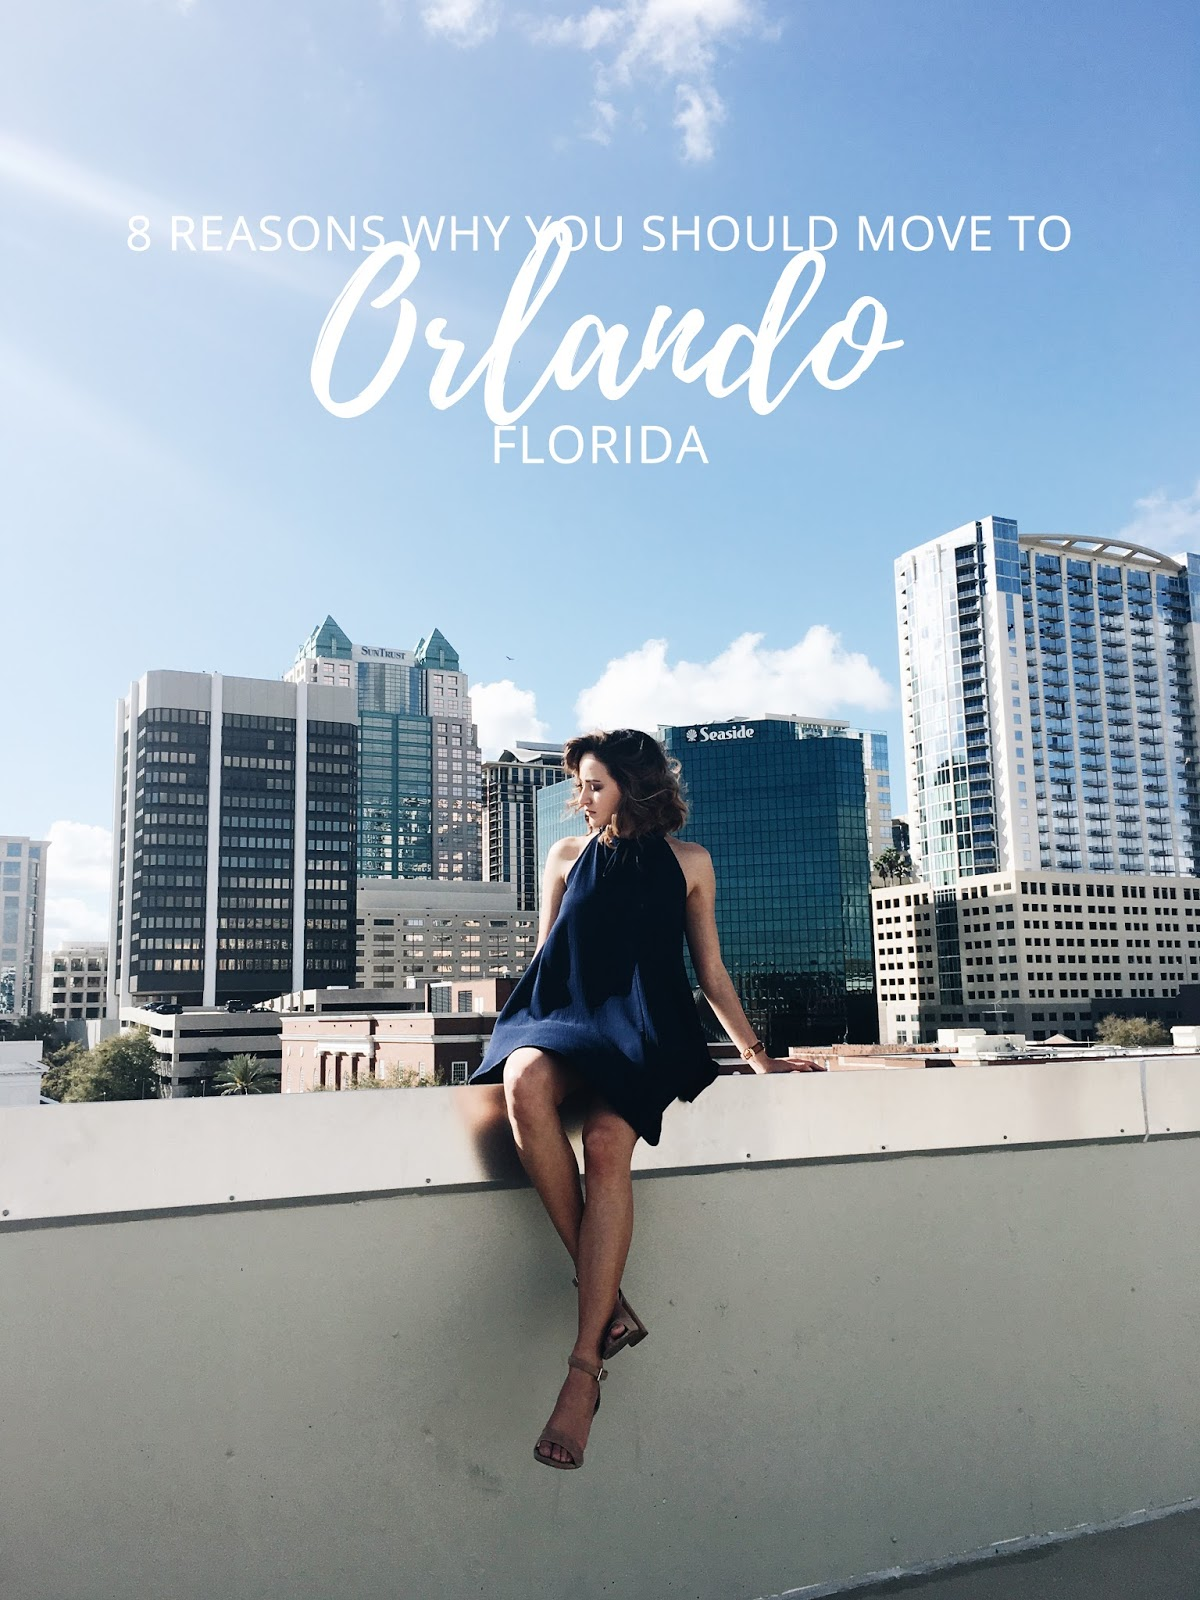 8 Reasons to Move to Orlando, Florida